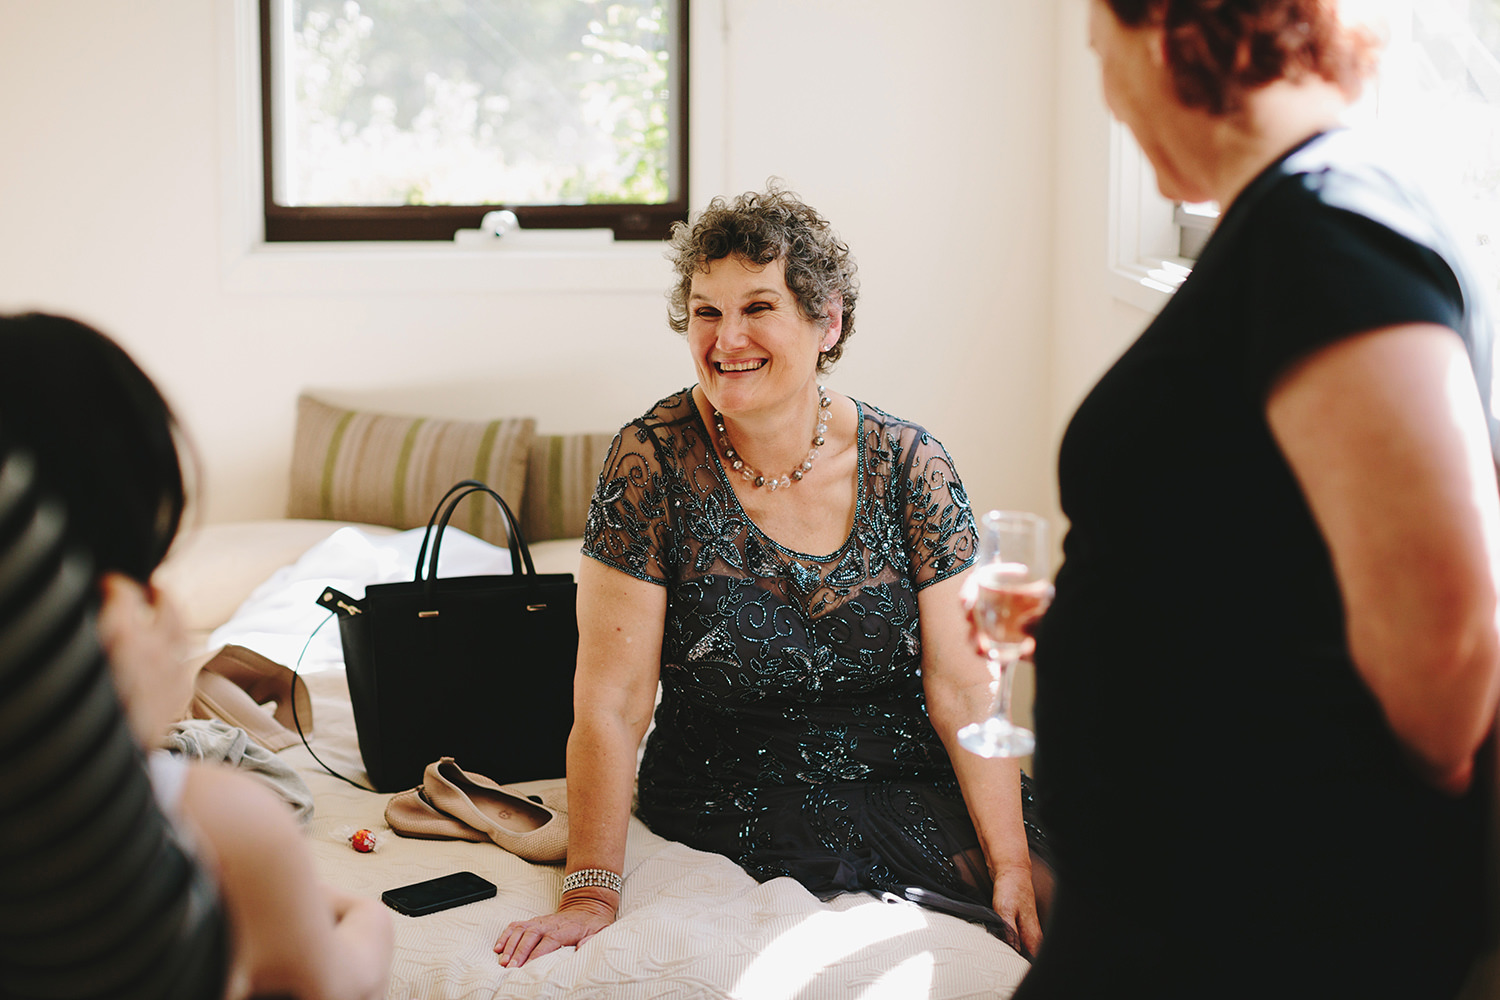 Melbourne_Winery_Wedding_Chris_Merrily041.JPG